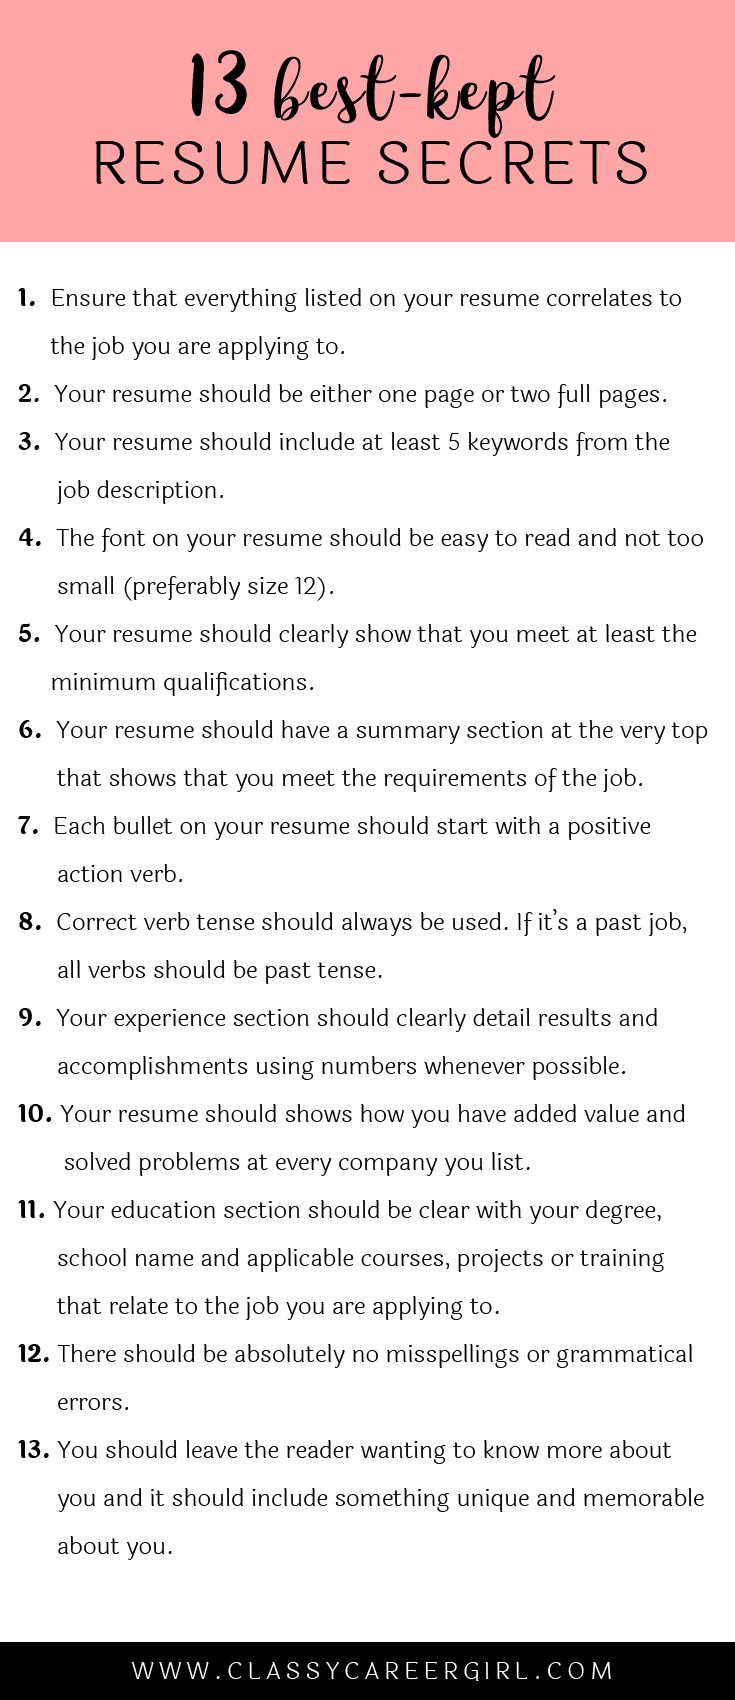 Opposenewapstandardsus  Seductive  Ideas About Resume On Pinterest  Cv Format Resume Cv And  With Goodlooking Some Hiring Managers Will Toss Your Resume Out If You Dont Know These  With Agreeable Define Resume For A Job Also Language Skills In Resume In Addition Sales Resume Objective Examples And Actors Resume Example As Well As Business Analyst Resume Objective Additionally Microbiologist Resume From Pinterestcom With Opposenewapstandardsus  Goodlooking  Ideas About Resume On Pinterest  Cv Format Resume Cv And  With Agreeable Some Hiring Managers Will Toss Your Resume Out If You Dont Know These  And Seductive Define Resume For A Job Also Language Skills In Resume In Addition Sales Resume Objective Examples From Pinterestcom